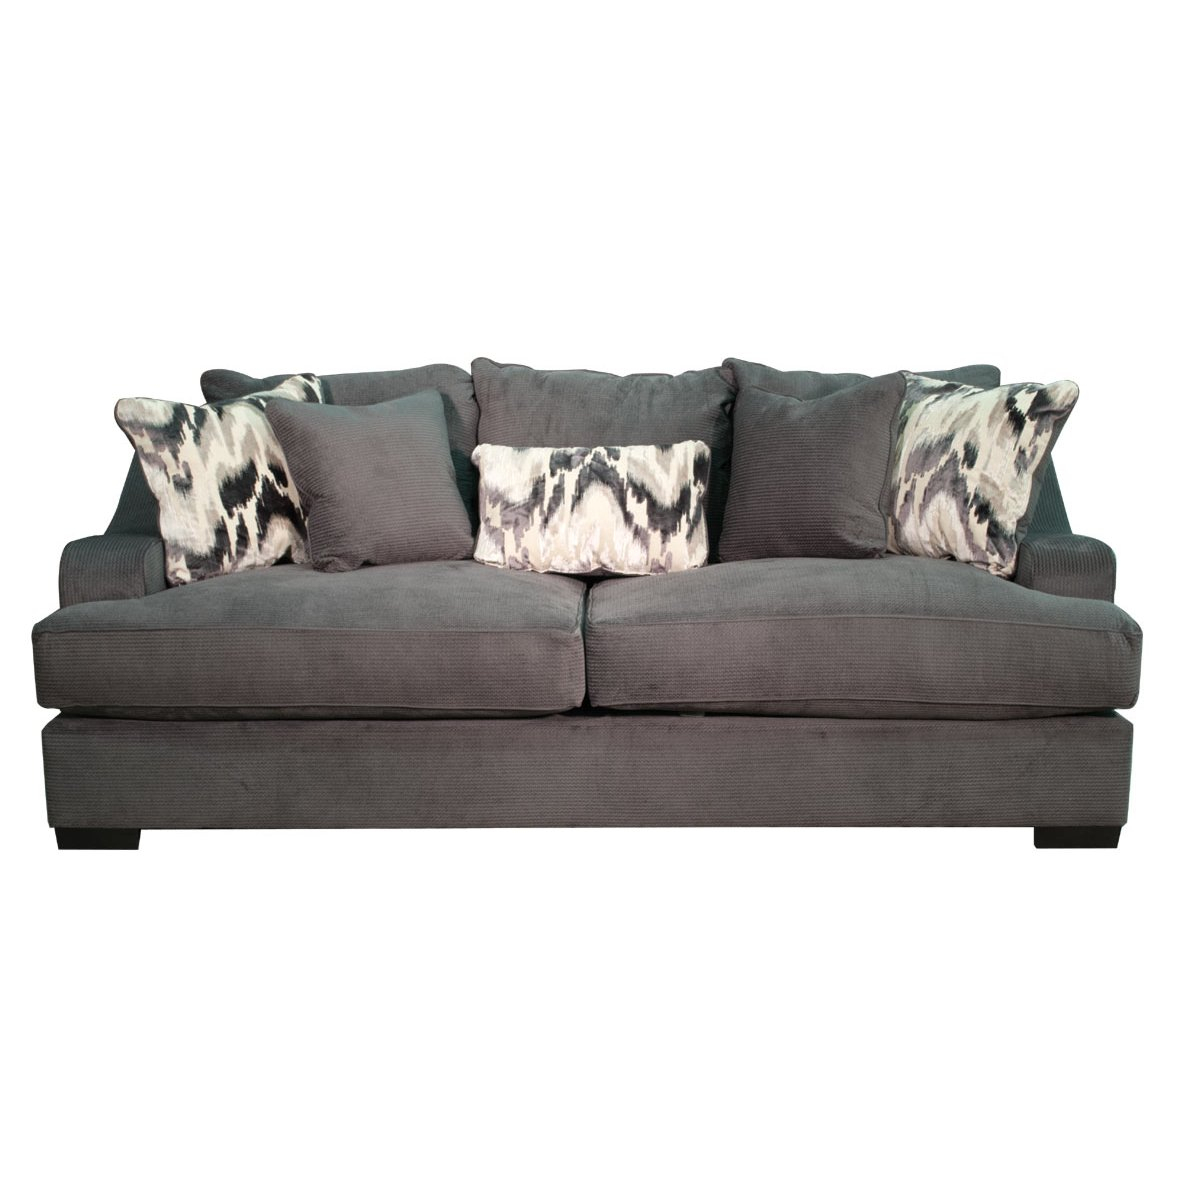 Casual Modern Charcoal Gray Sofa – Spartan | Rc Willey Furniture Store Within Raven Grey Tv Stands (View 21 of 30)